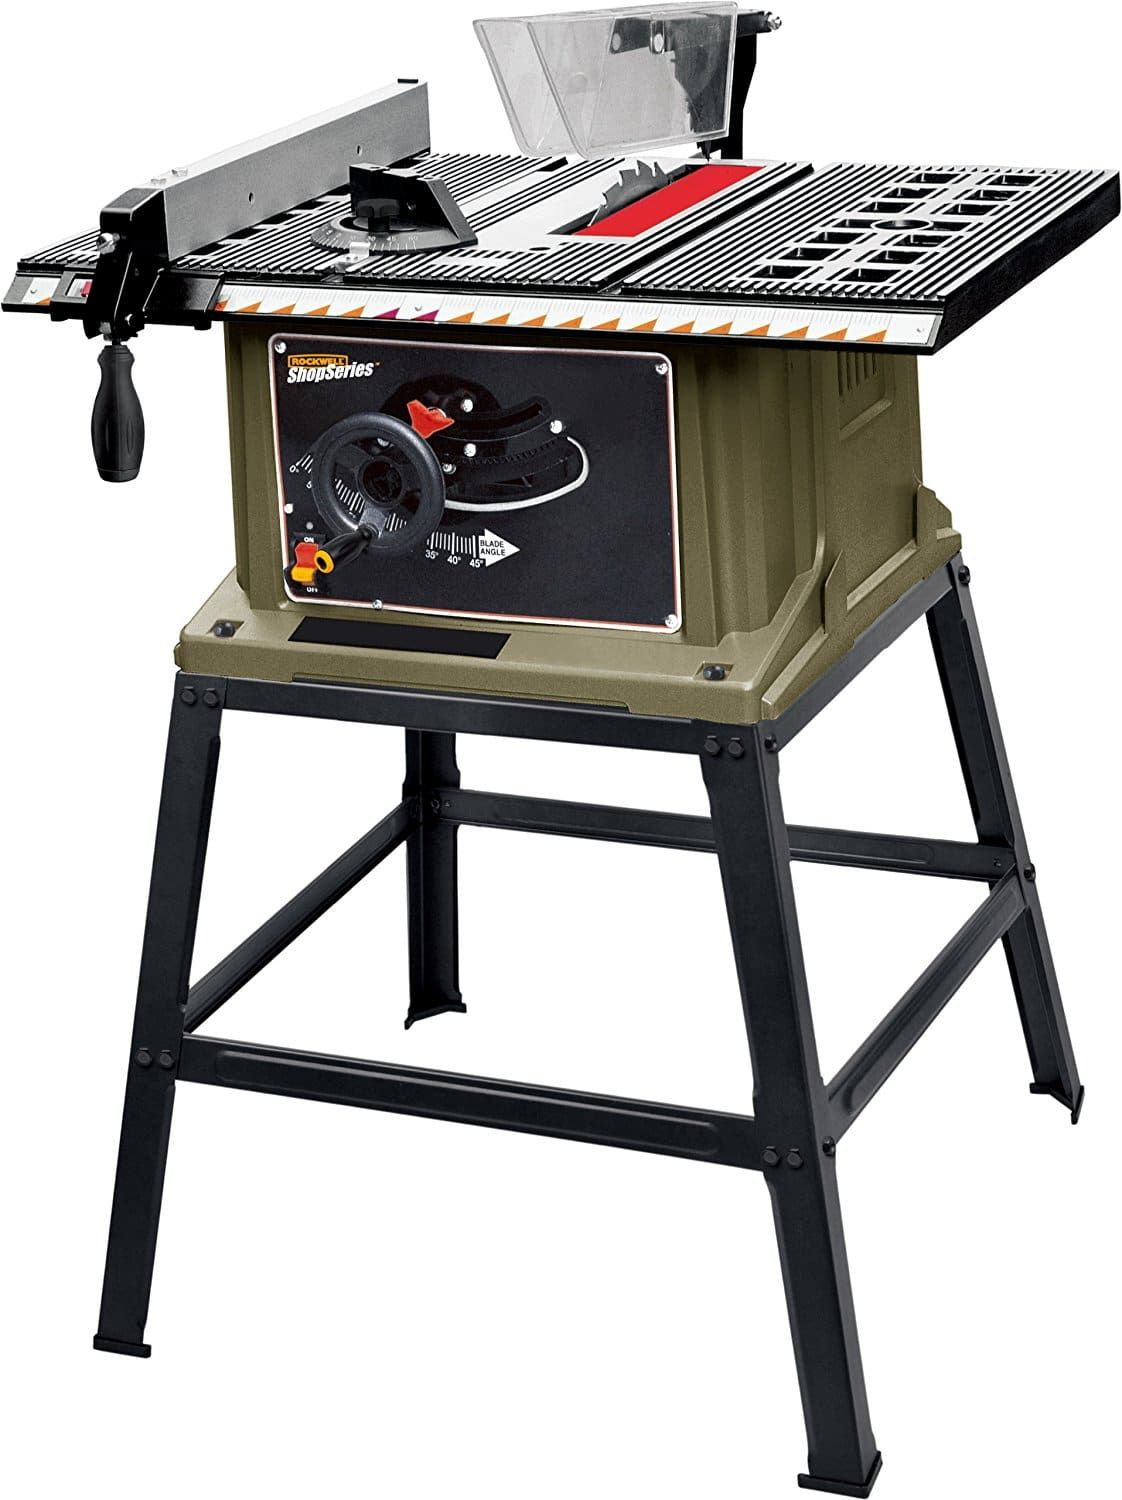 Top 10 Best Mini Table Saws In 2020 Purchasing Guide Hqreview Best Table Saw Portable Table Saw Table Saw Reviews